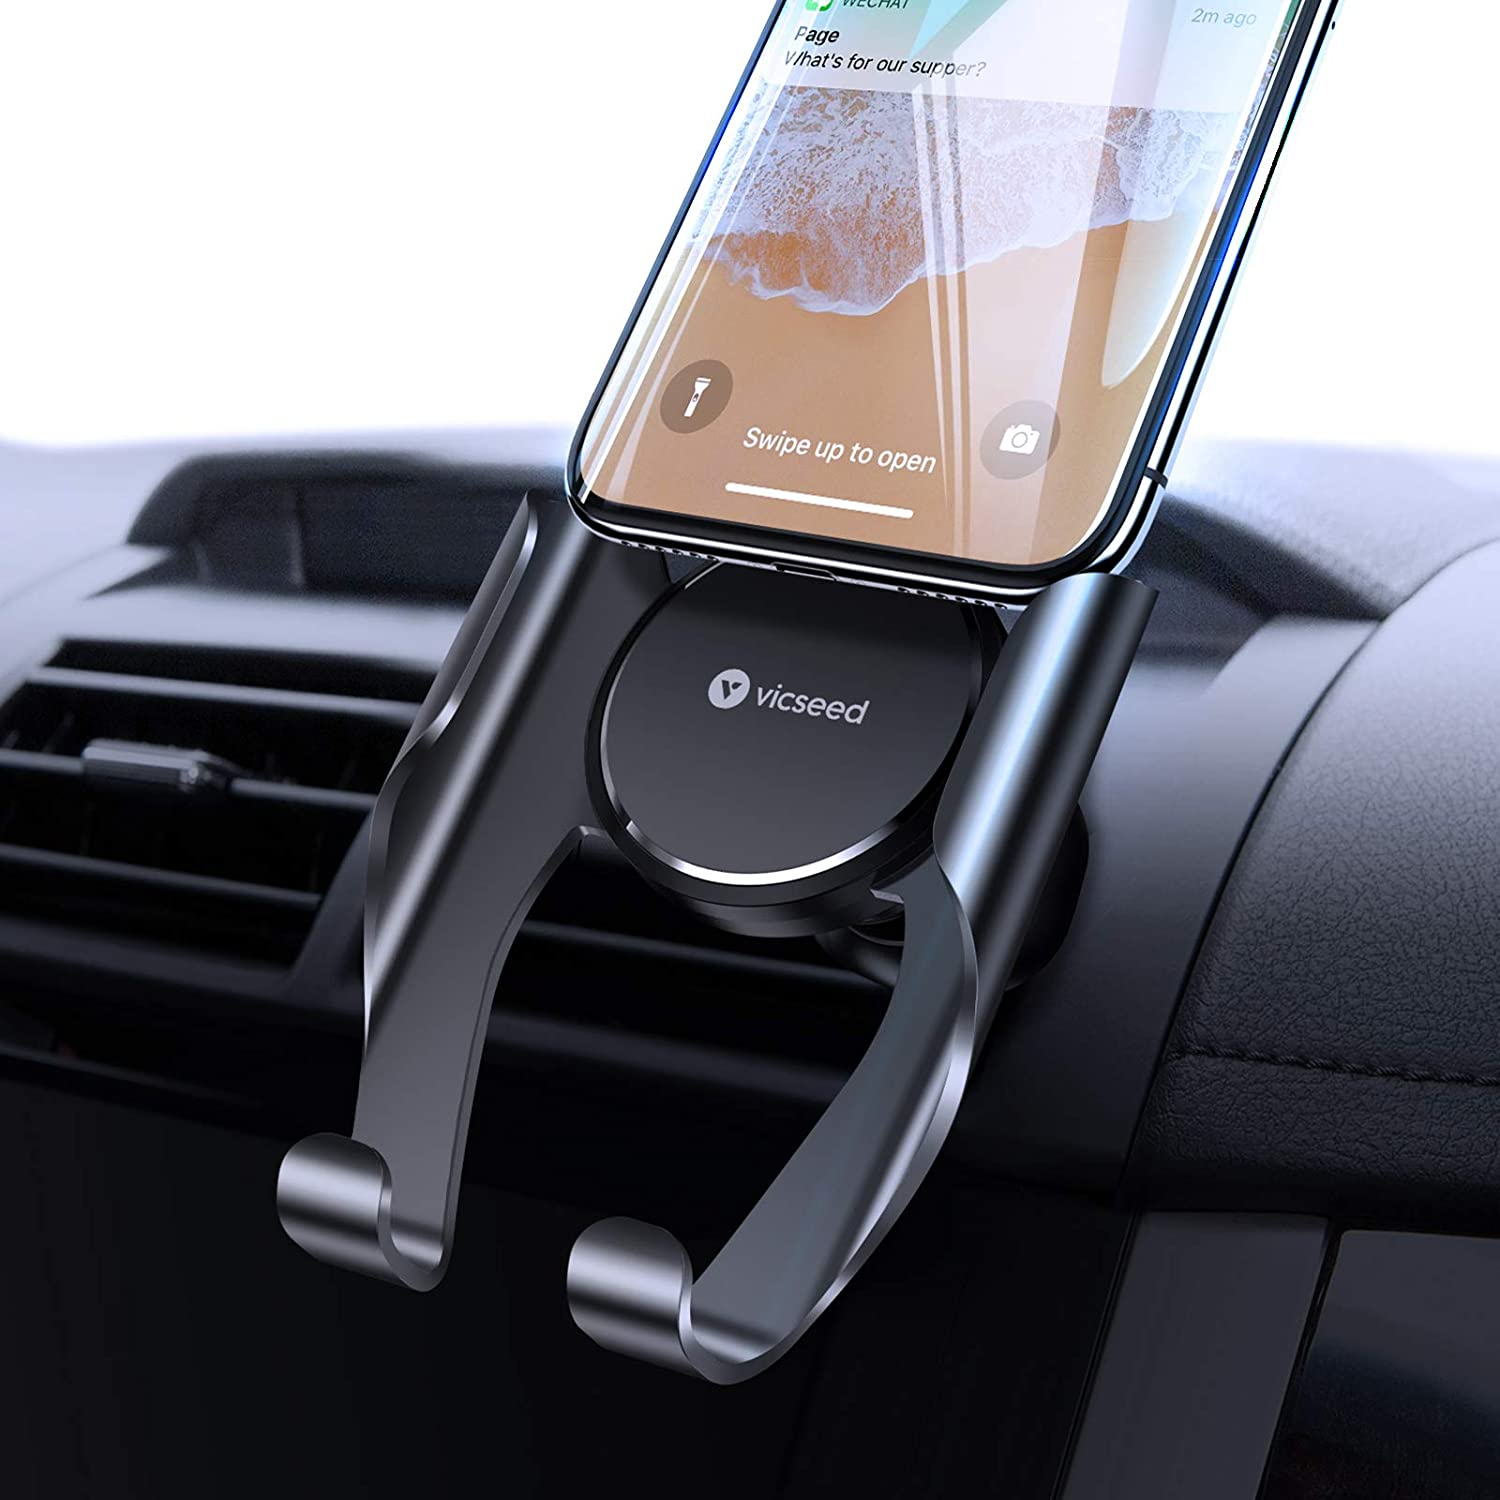 Amazon Com Vicseed Car Phone Mount Air Vent Phone Holder For Car Handsfree Cell Phone Car Mount Fit For Iphone 12 Pro Max Mini Se 11 Pro Max Xr Xs Max Xs X